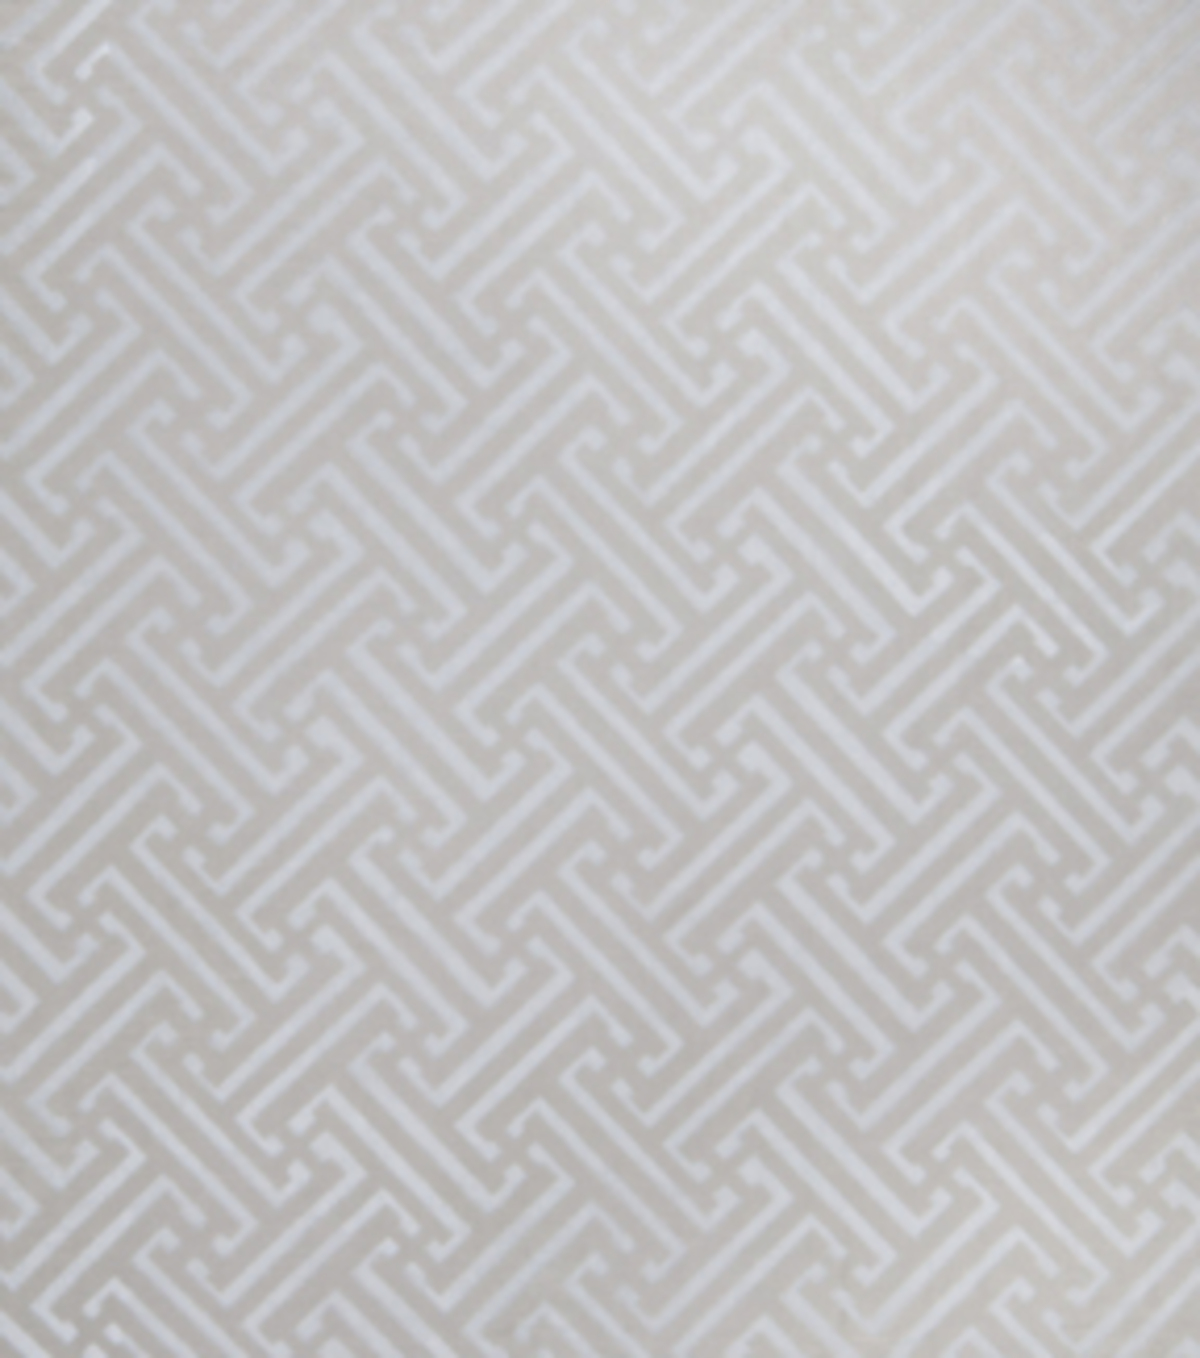 Home Decor 8\u0022x8\u0022 Fabric Swatch-Eaton Square Composer   Flax